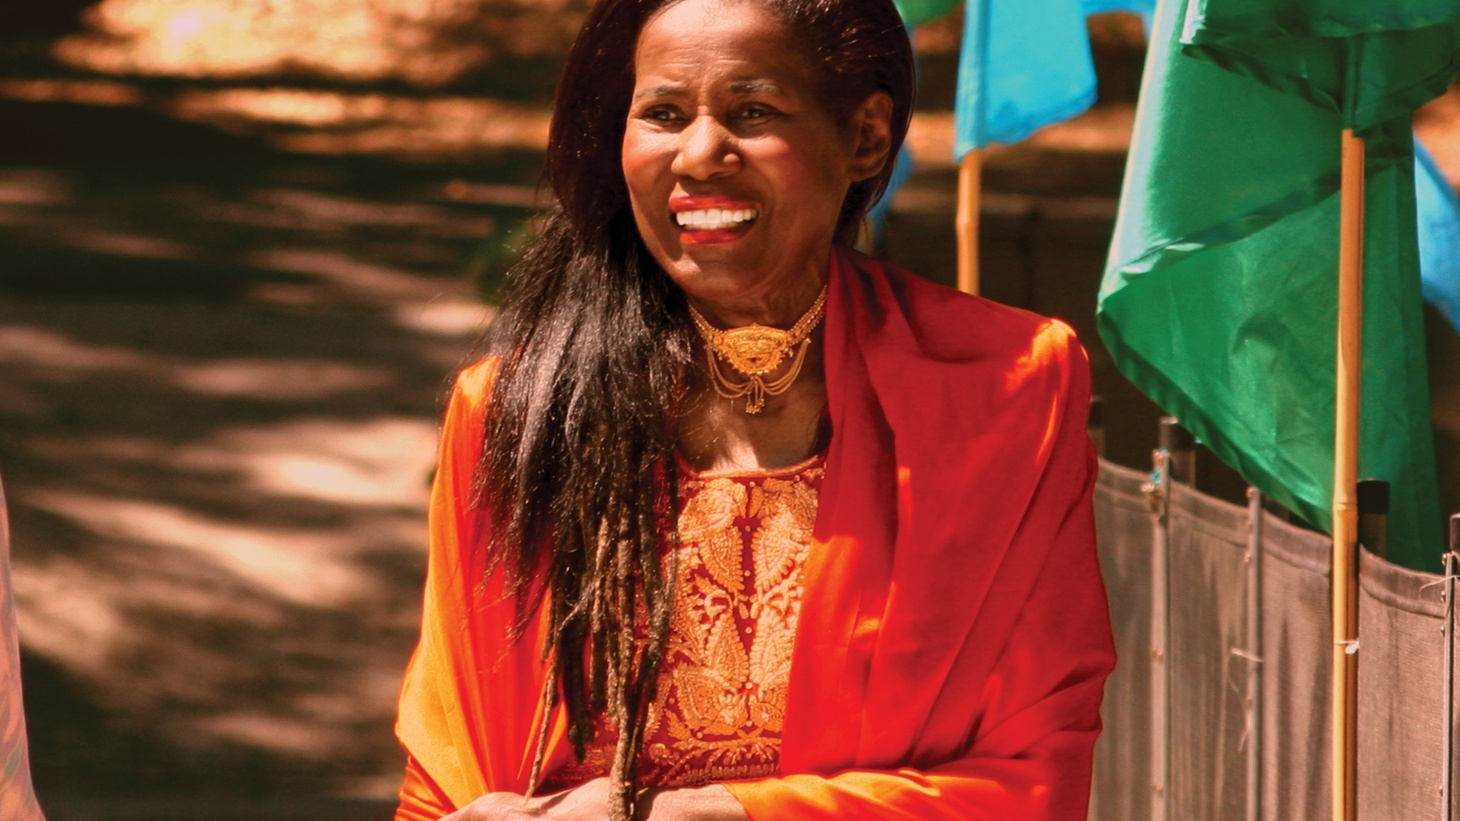 Multi-instrumentalist, composer, and the wife of John Coltrane, Alice Coltrane Turiyasangitananda stood in her husband's shadow. Few know that in the last two decades of her life, she composed Hindu devotional songs as the spiritual leader of an ashram in the Los Angeles suburb of Agoura Hills.